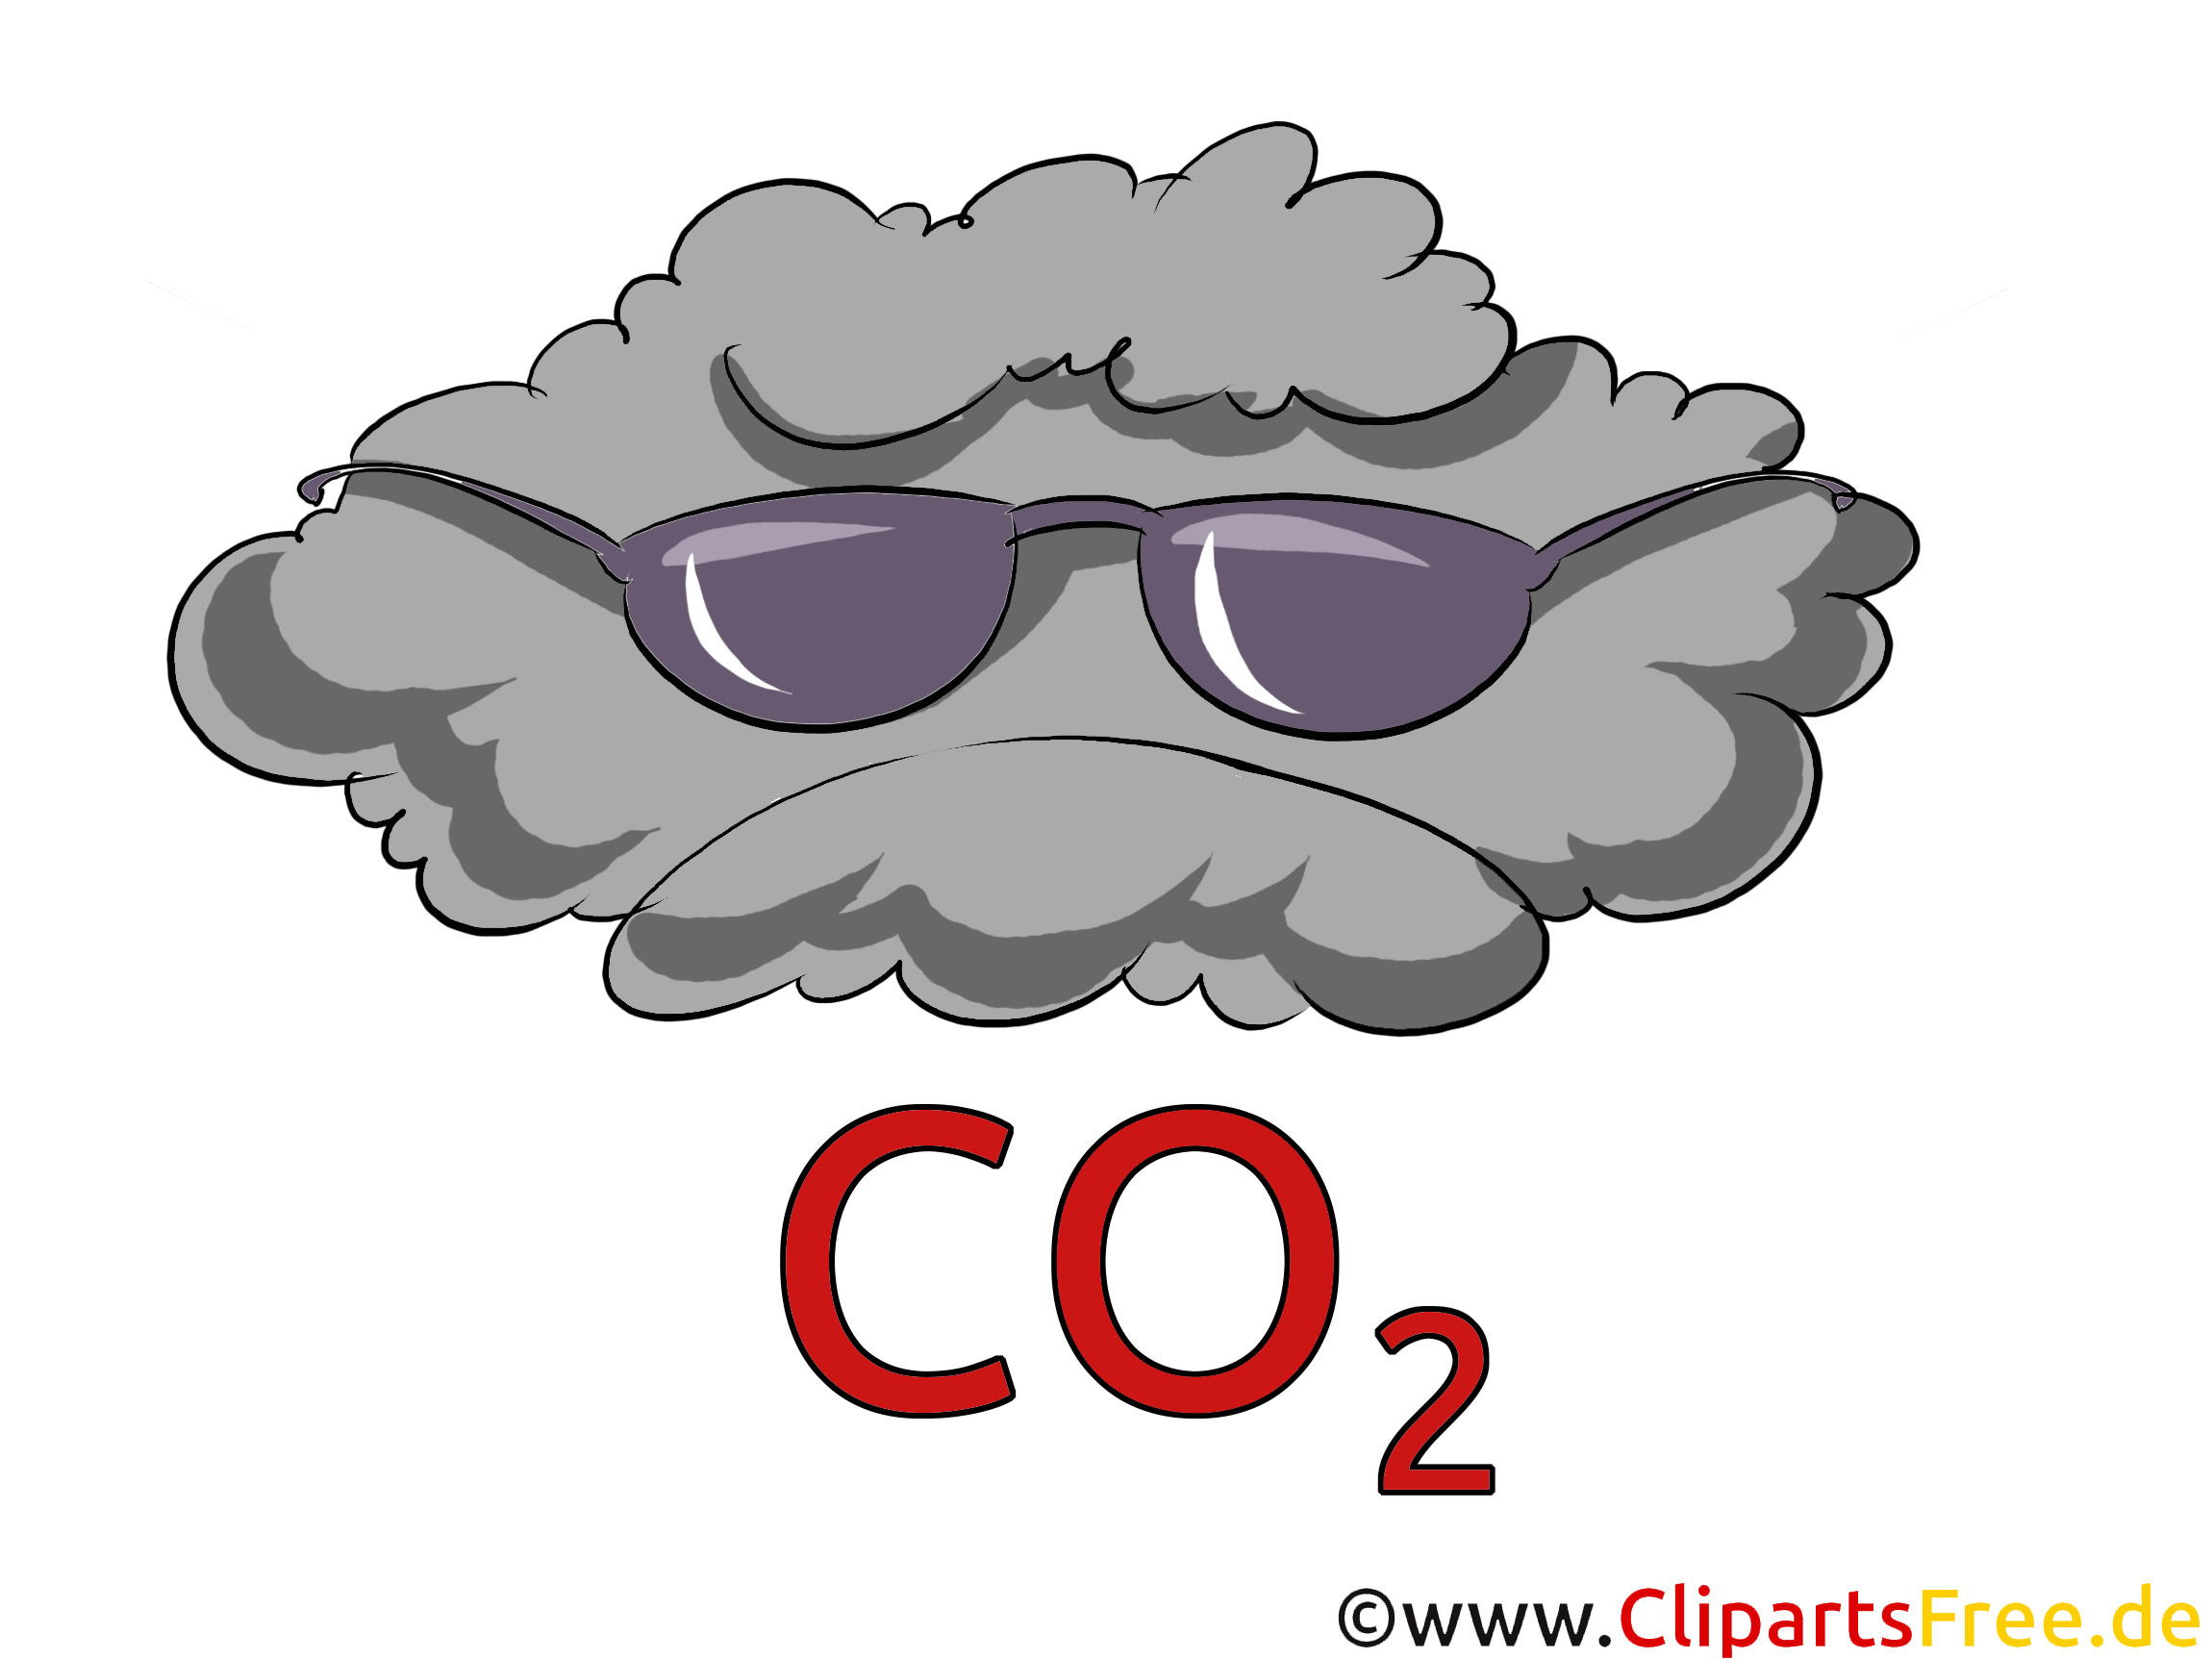 Co2 Illustration Bilder, Stocks, Grafiken